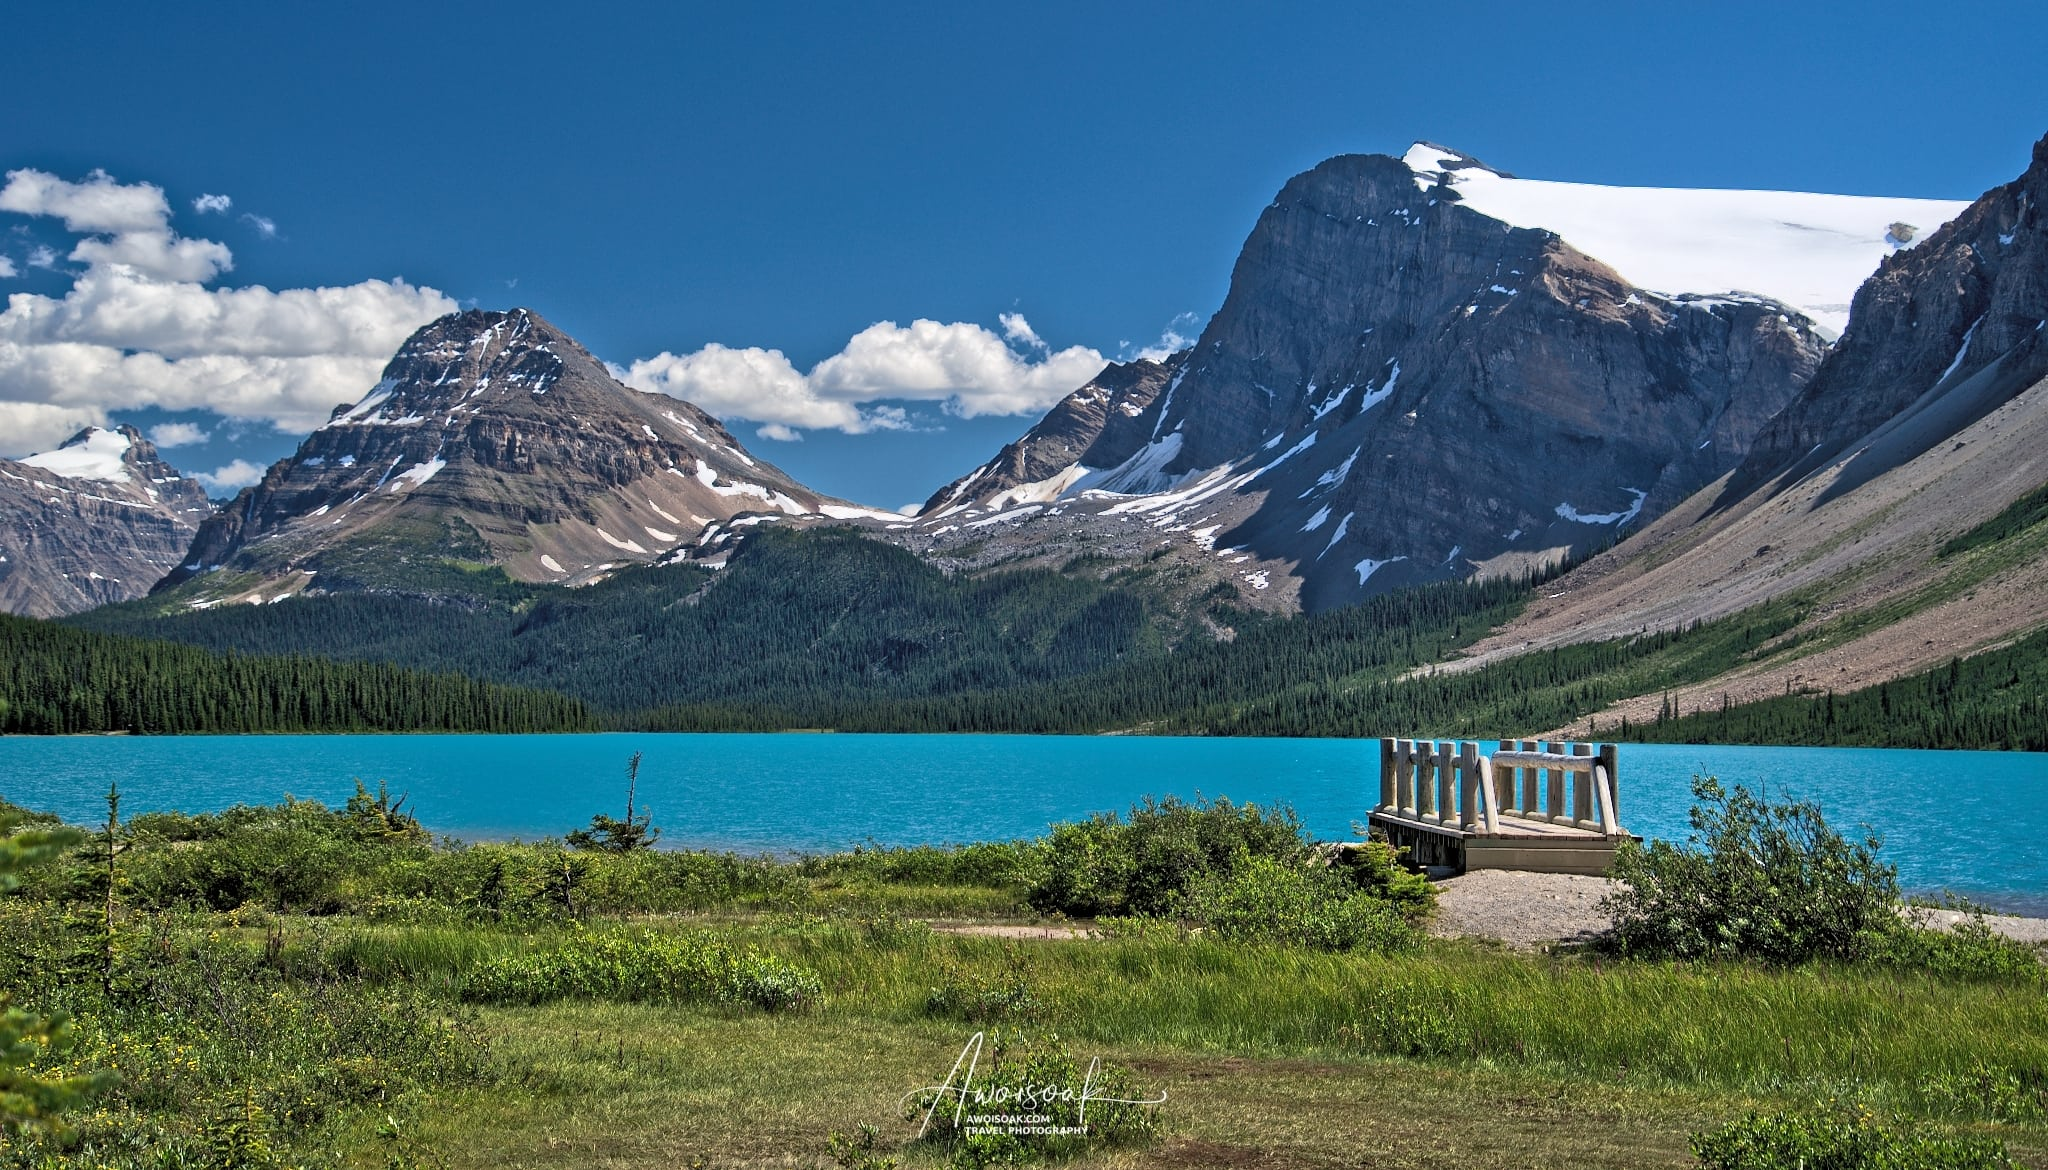 Plan A Road Trip >> Canadian Rockies | AwOiSoAk | Road trip guide to the ...